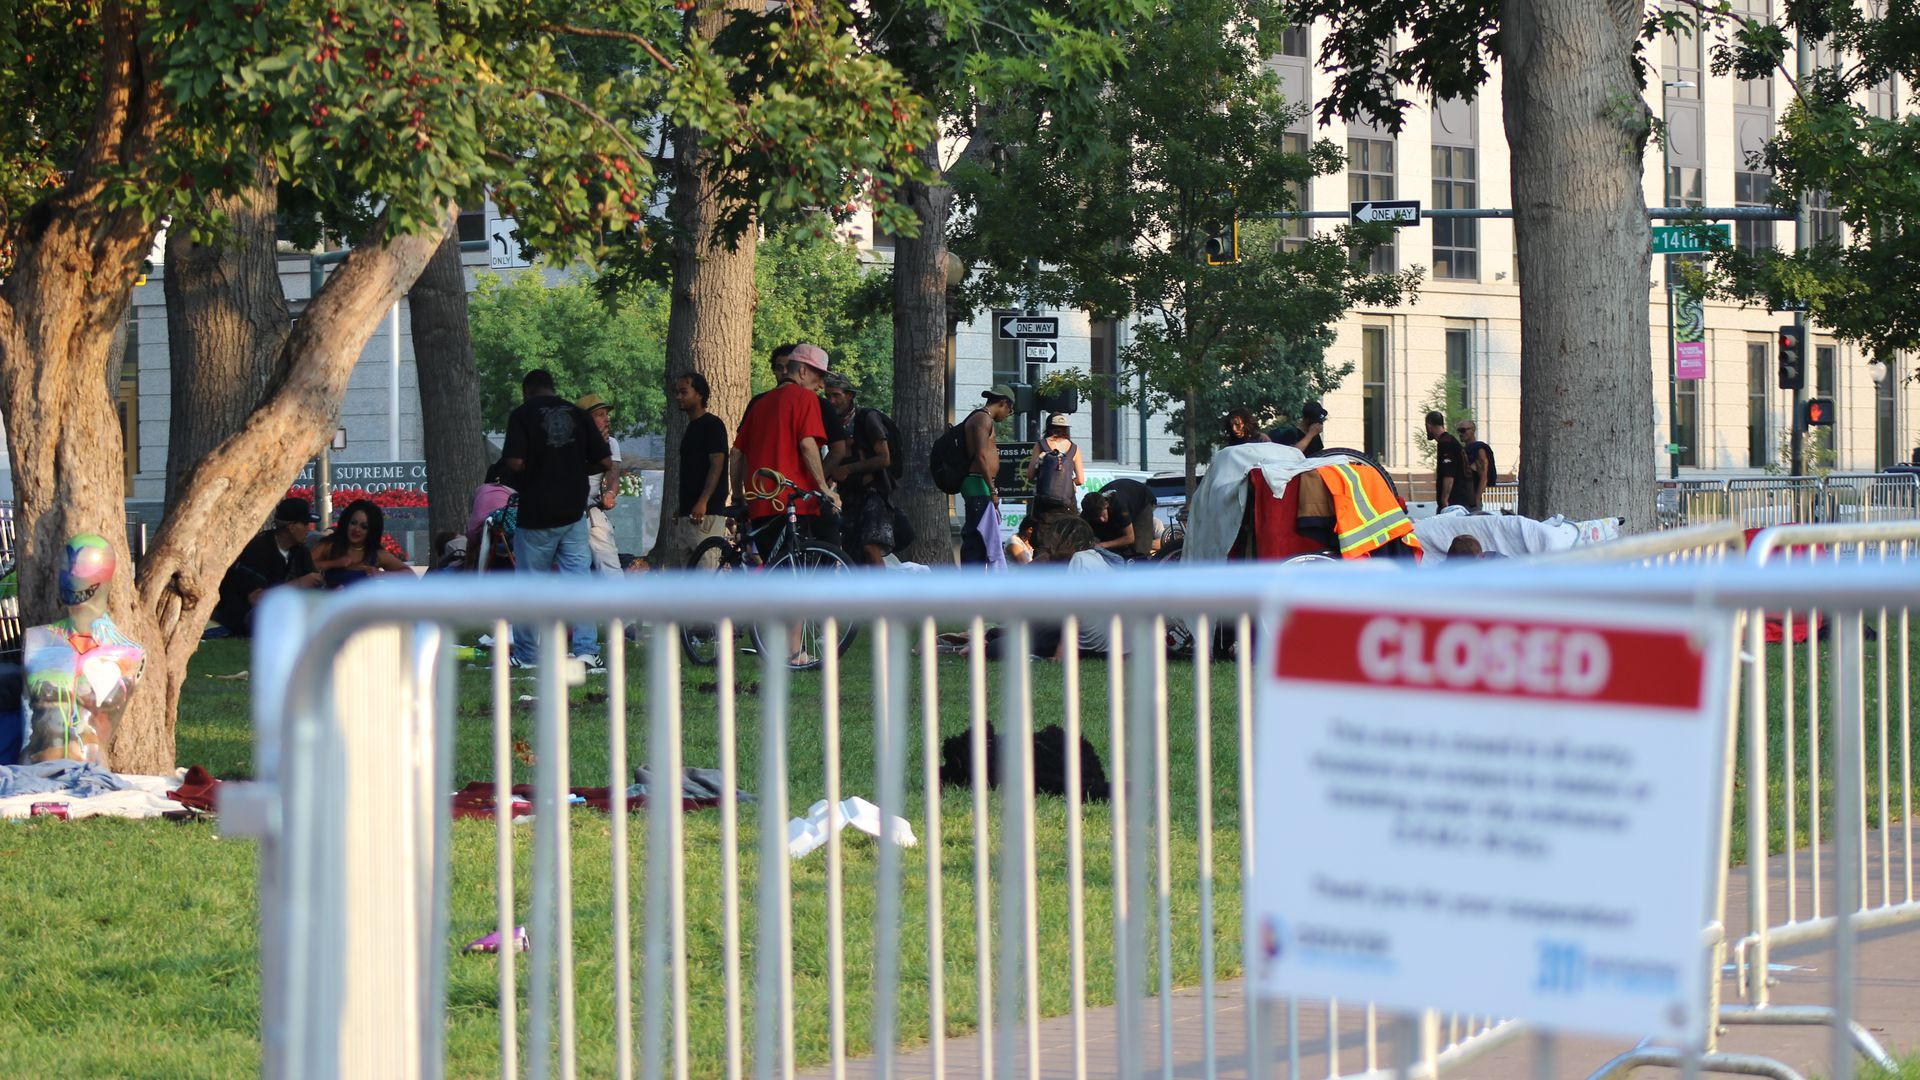 A photo of a park closed sign in the foreground with people experiencing homelessness in the background